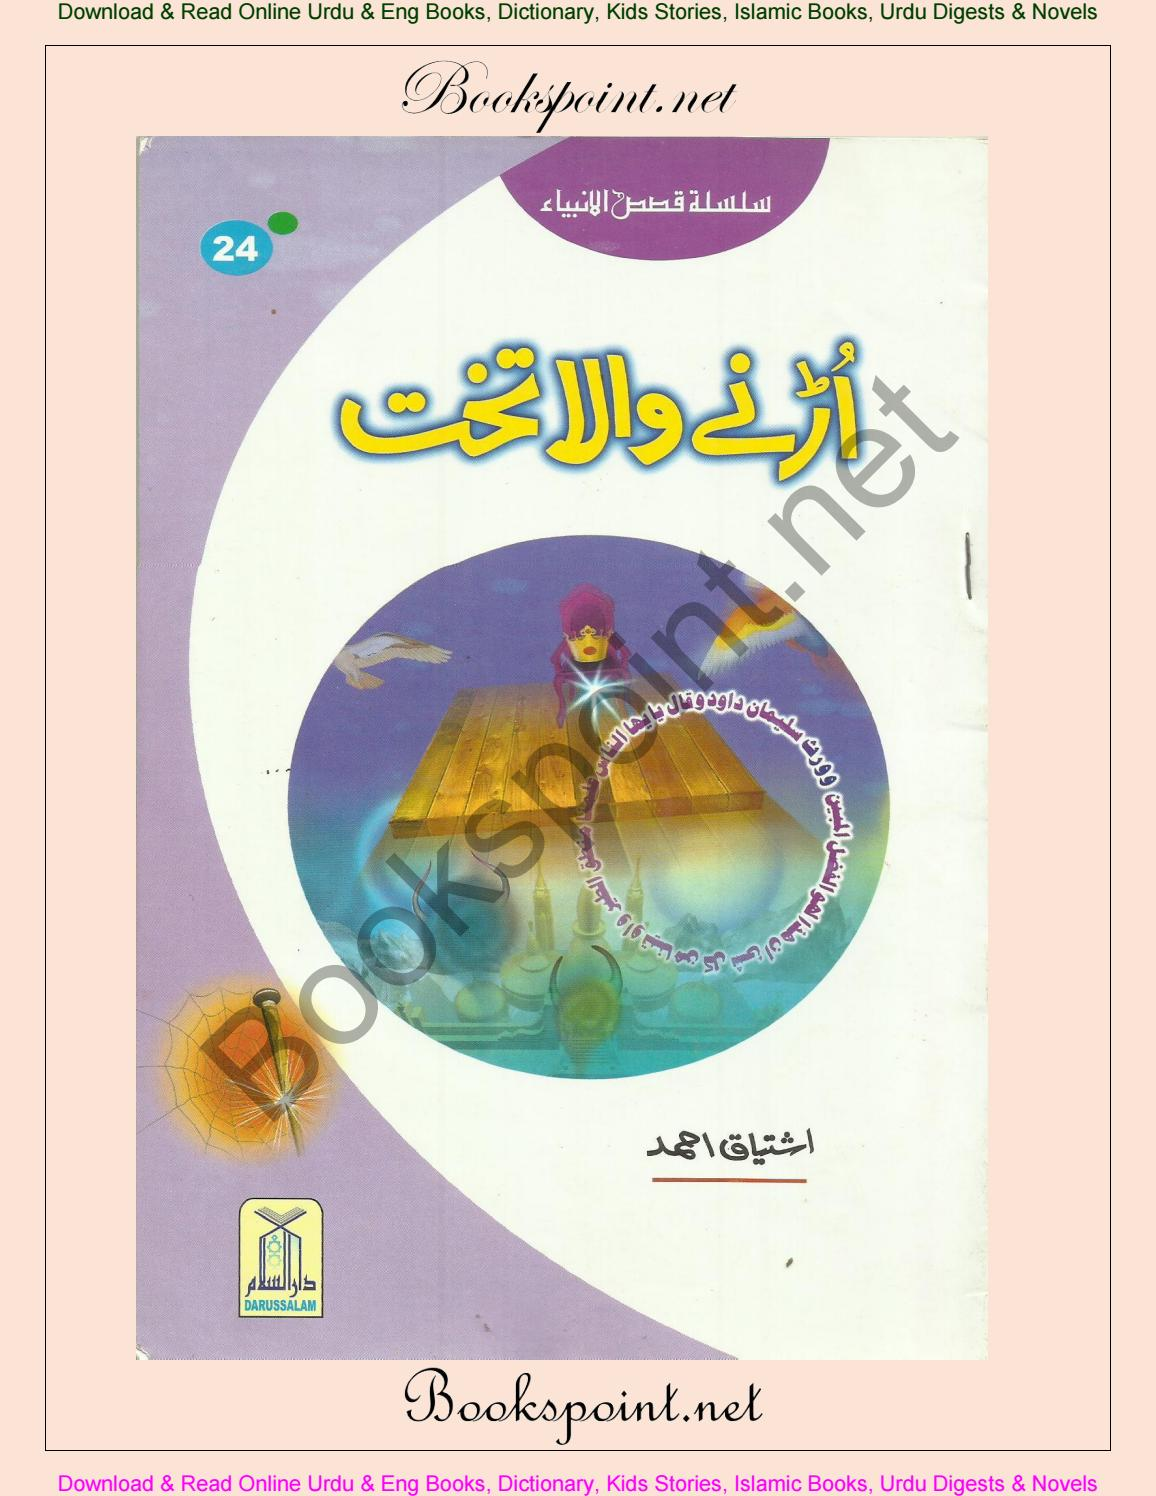 Udne wala takht pdf book by asaboor - issuu